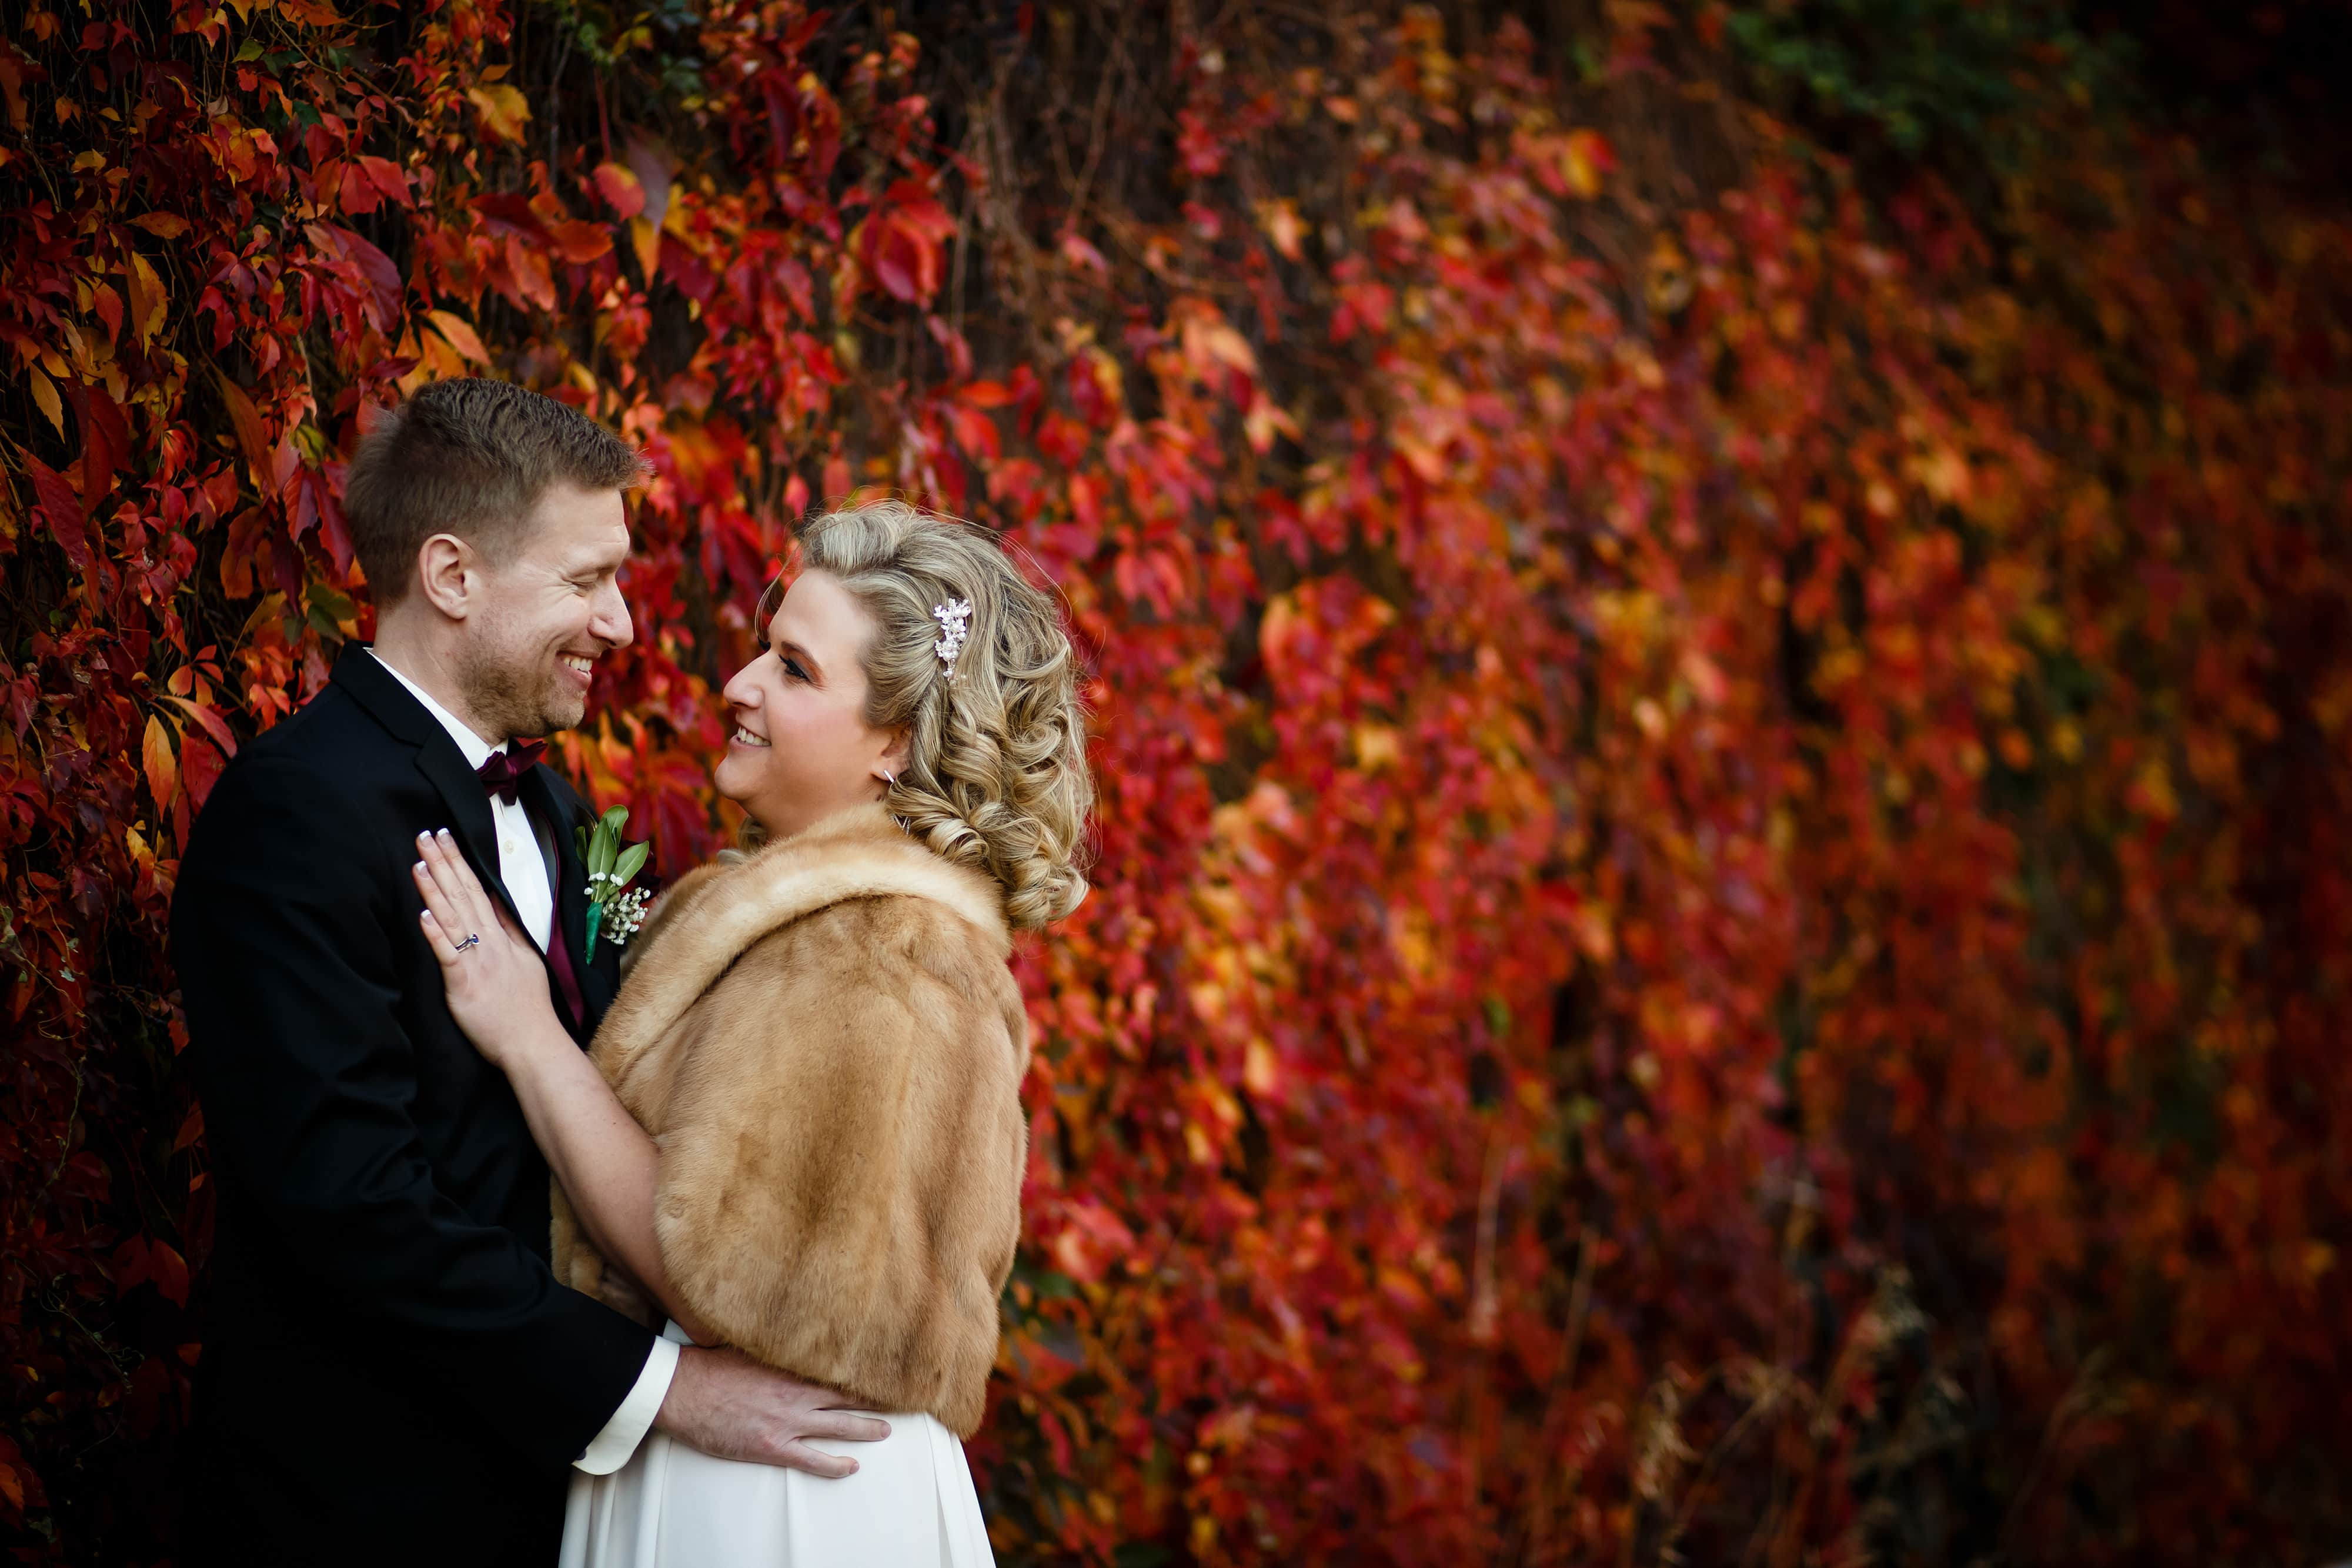 Sarah and Ryan share a moment together in front of a red colored ivy wall near the Cherry Creek path on their wedding day